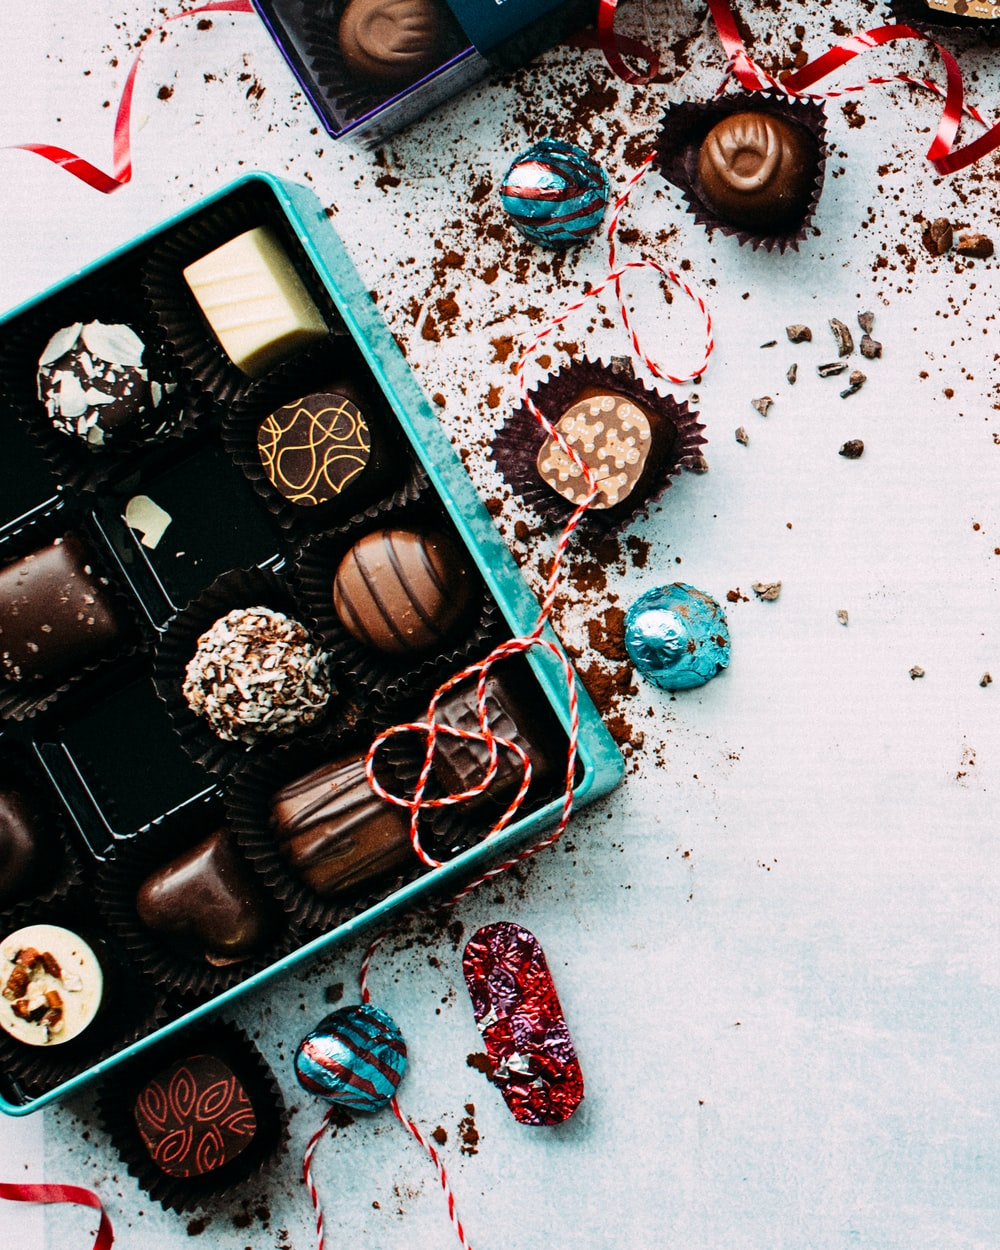 chocolates with box on white surface